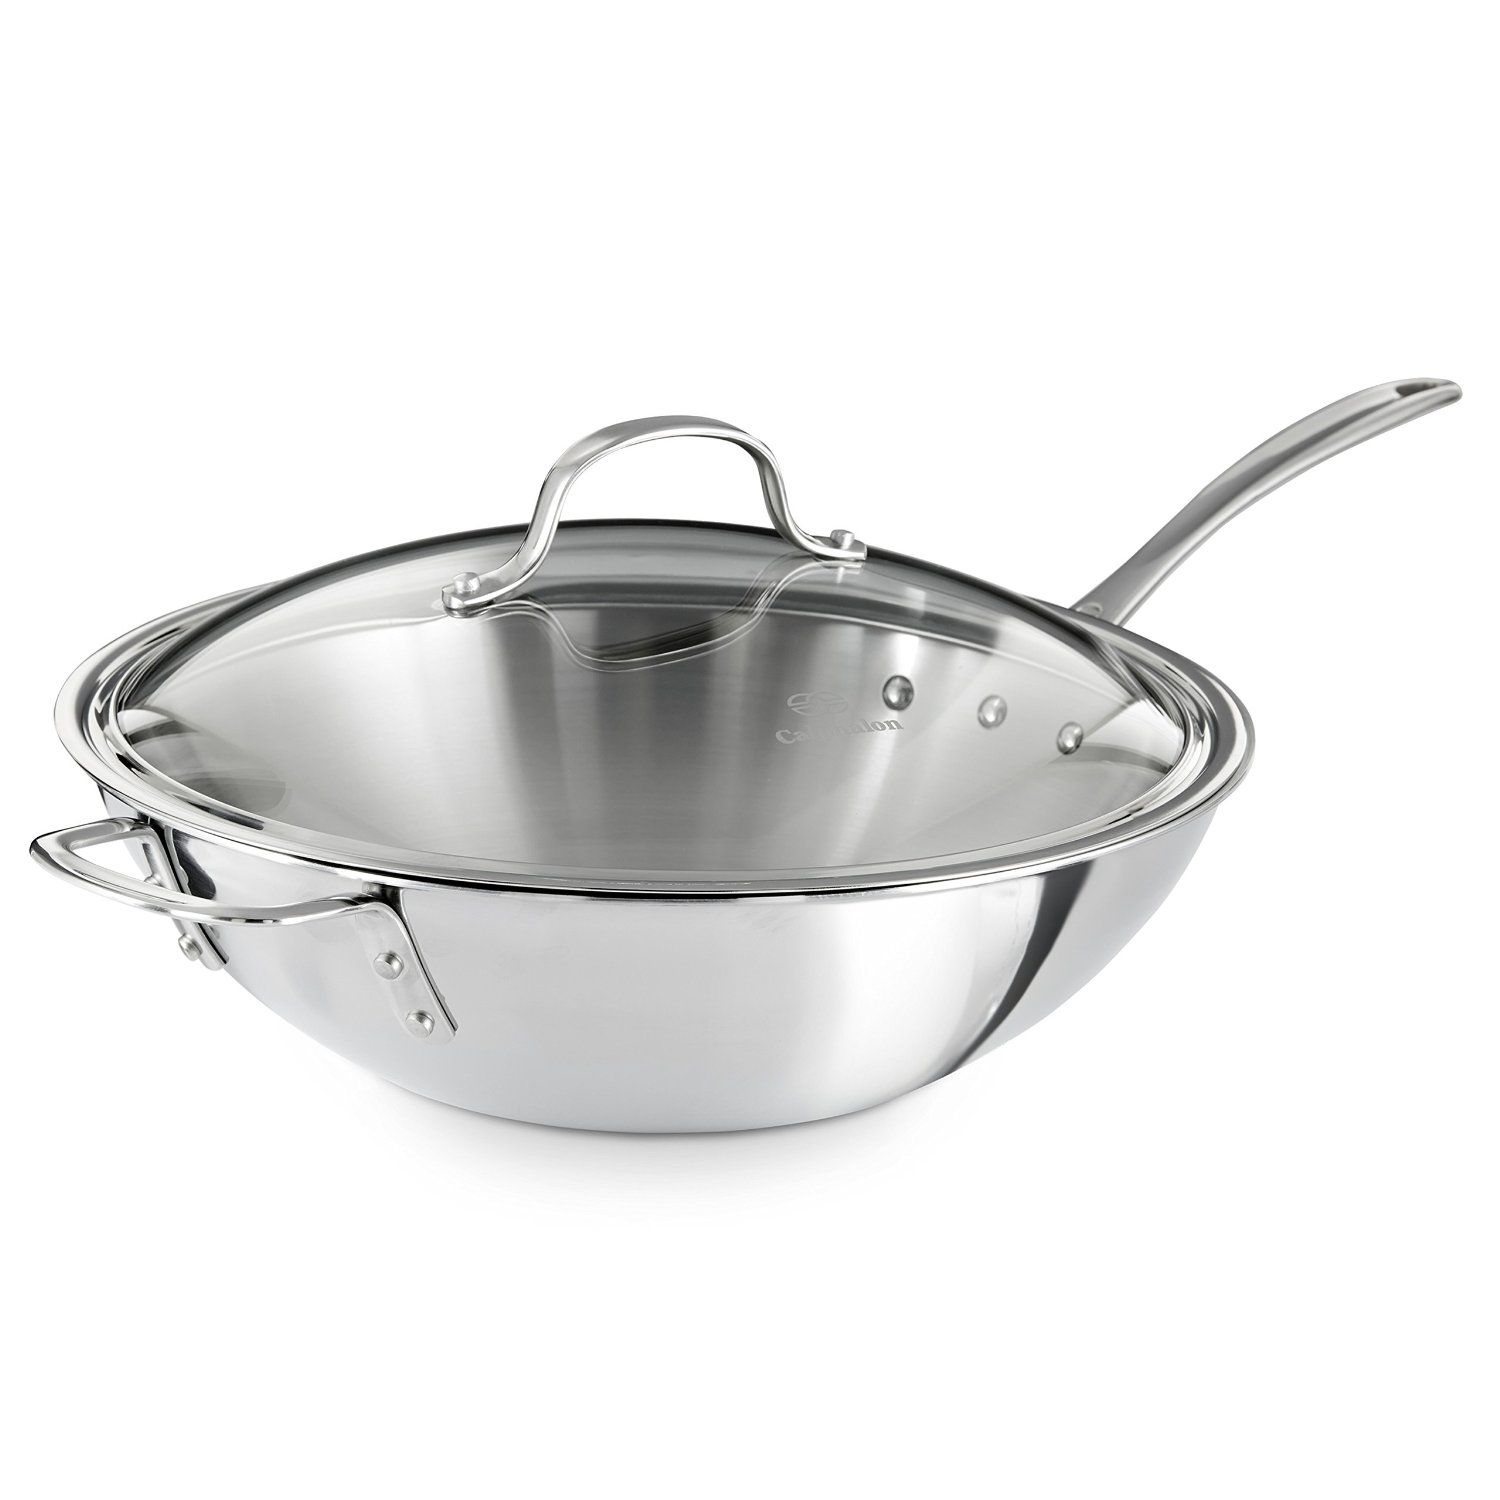 Cookware gt see more select by calphalon ceramic nonstick 8 inch an - Calphalon Triply Stainless Steel 12 Inch Wok Stir Fry Pan With Cover